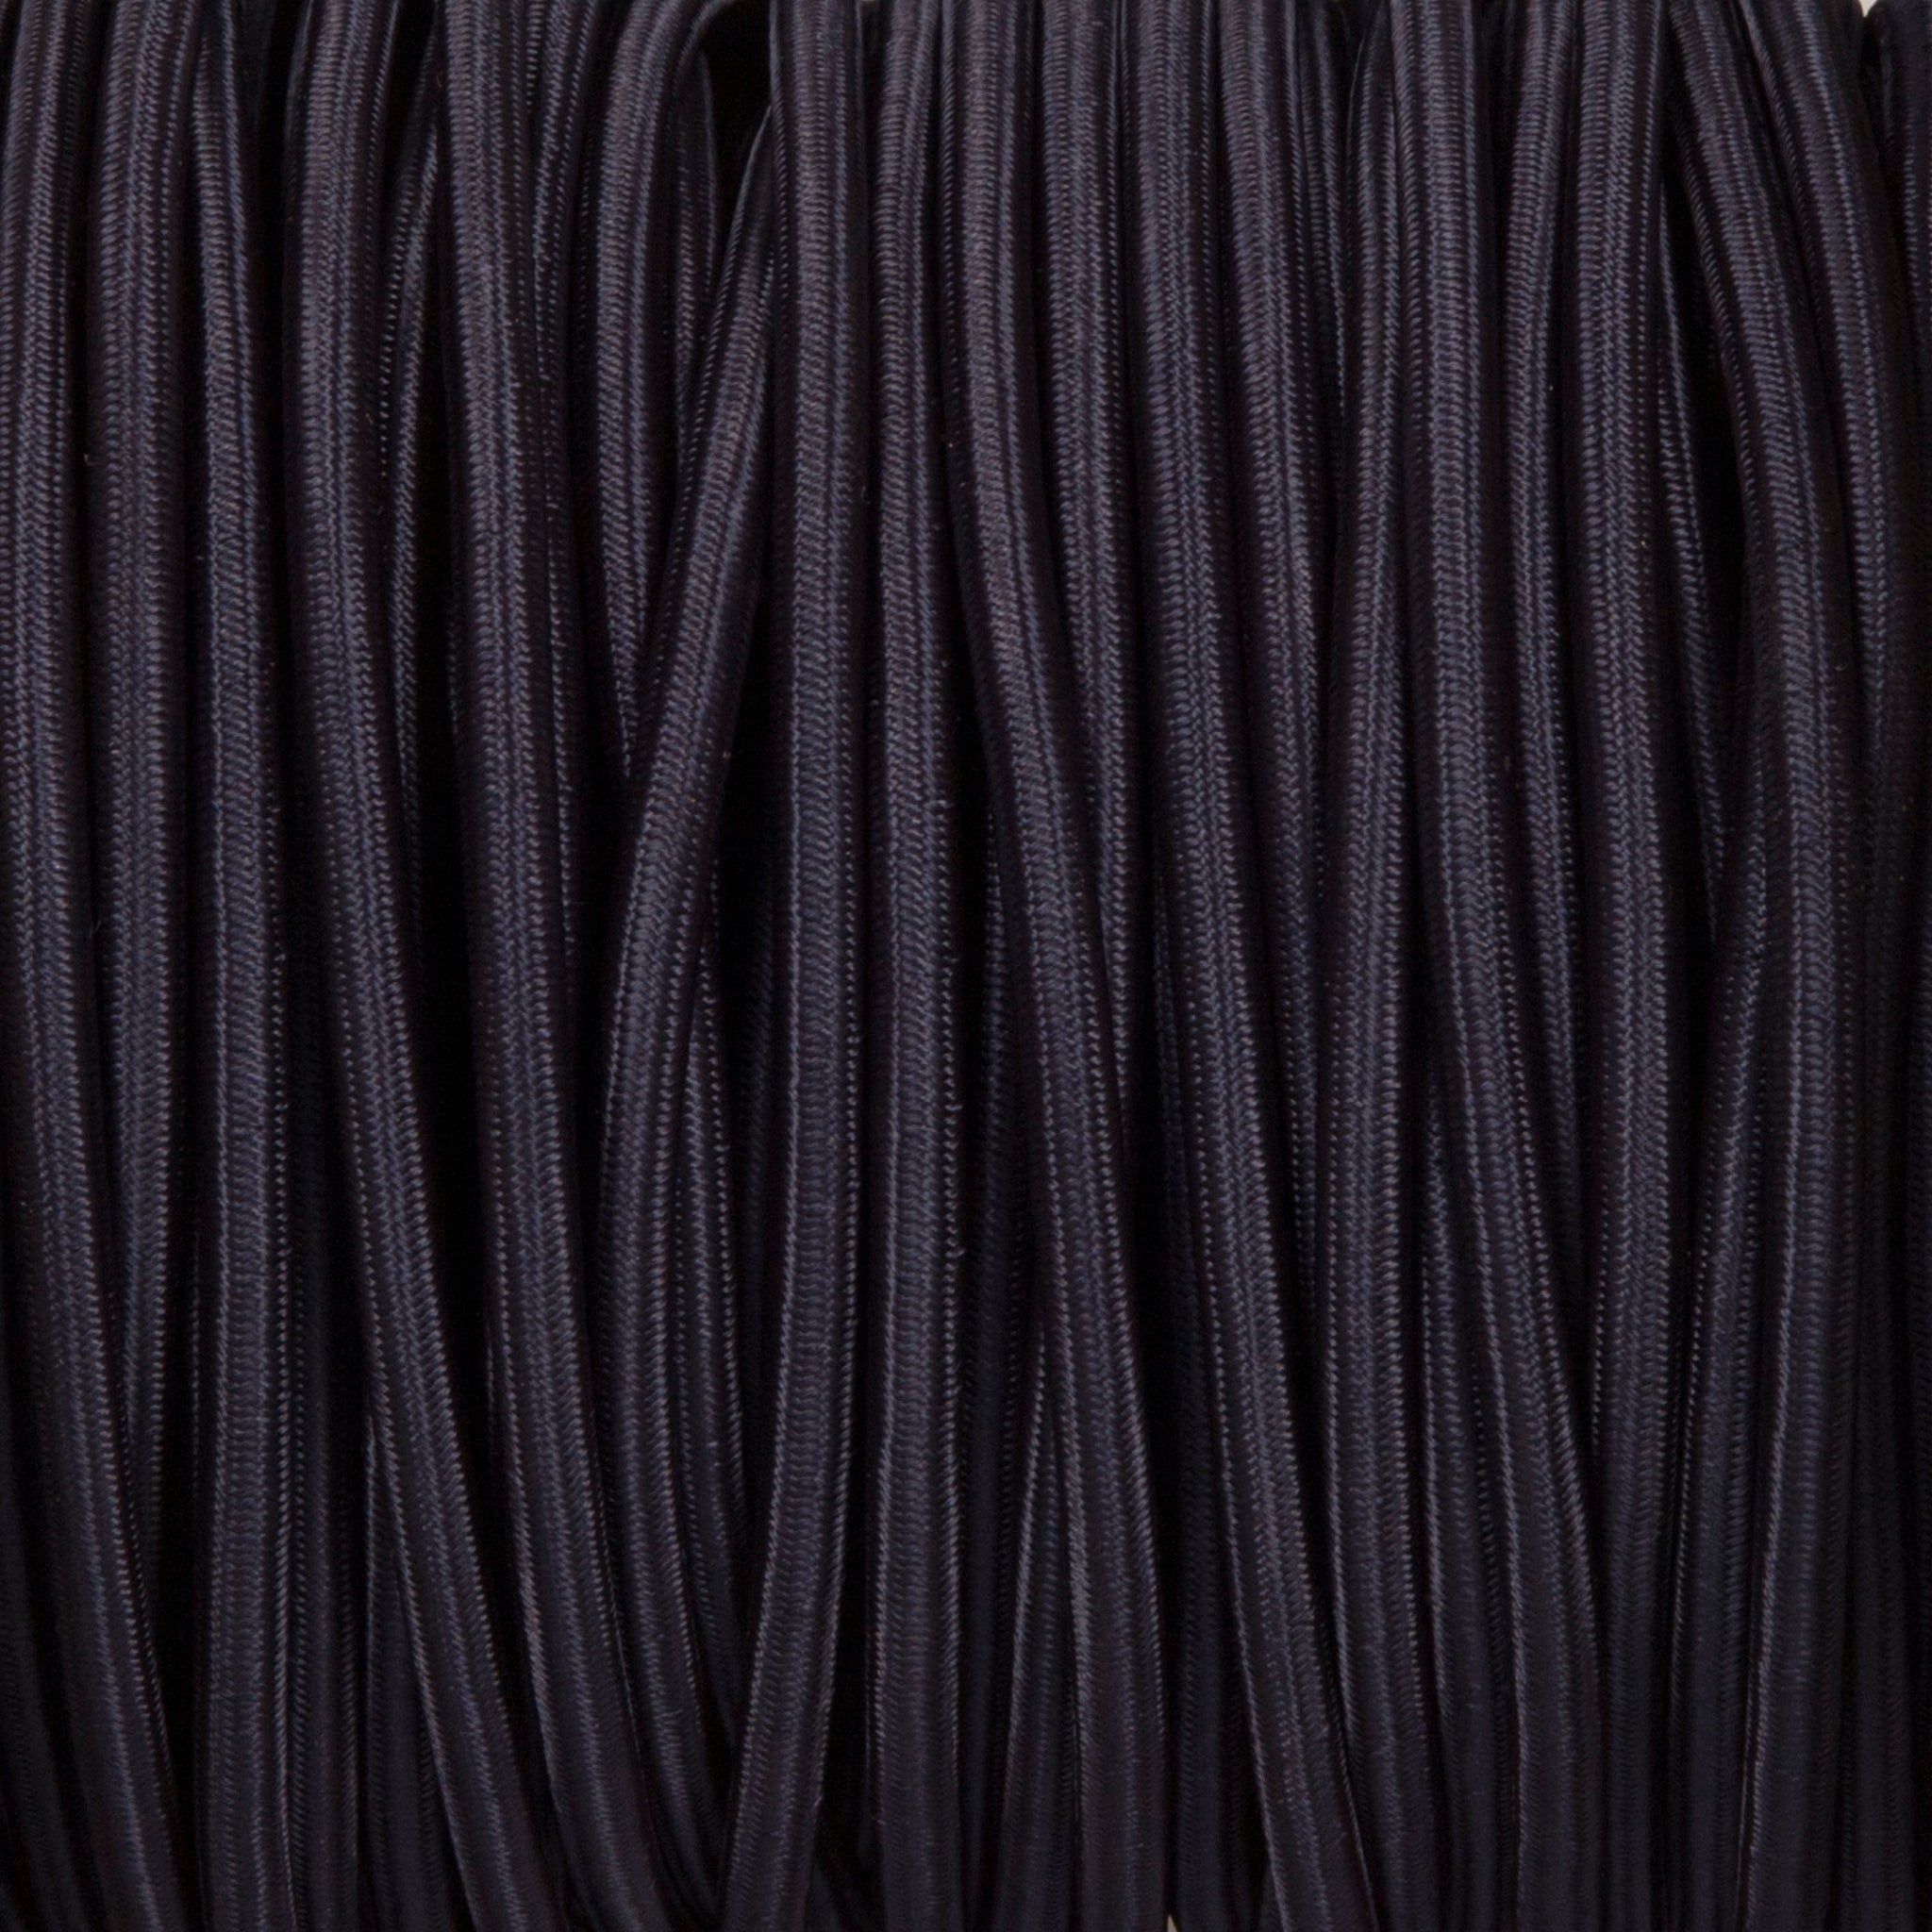 Round lighting cable - Navy Blue braided fabric